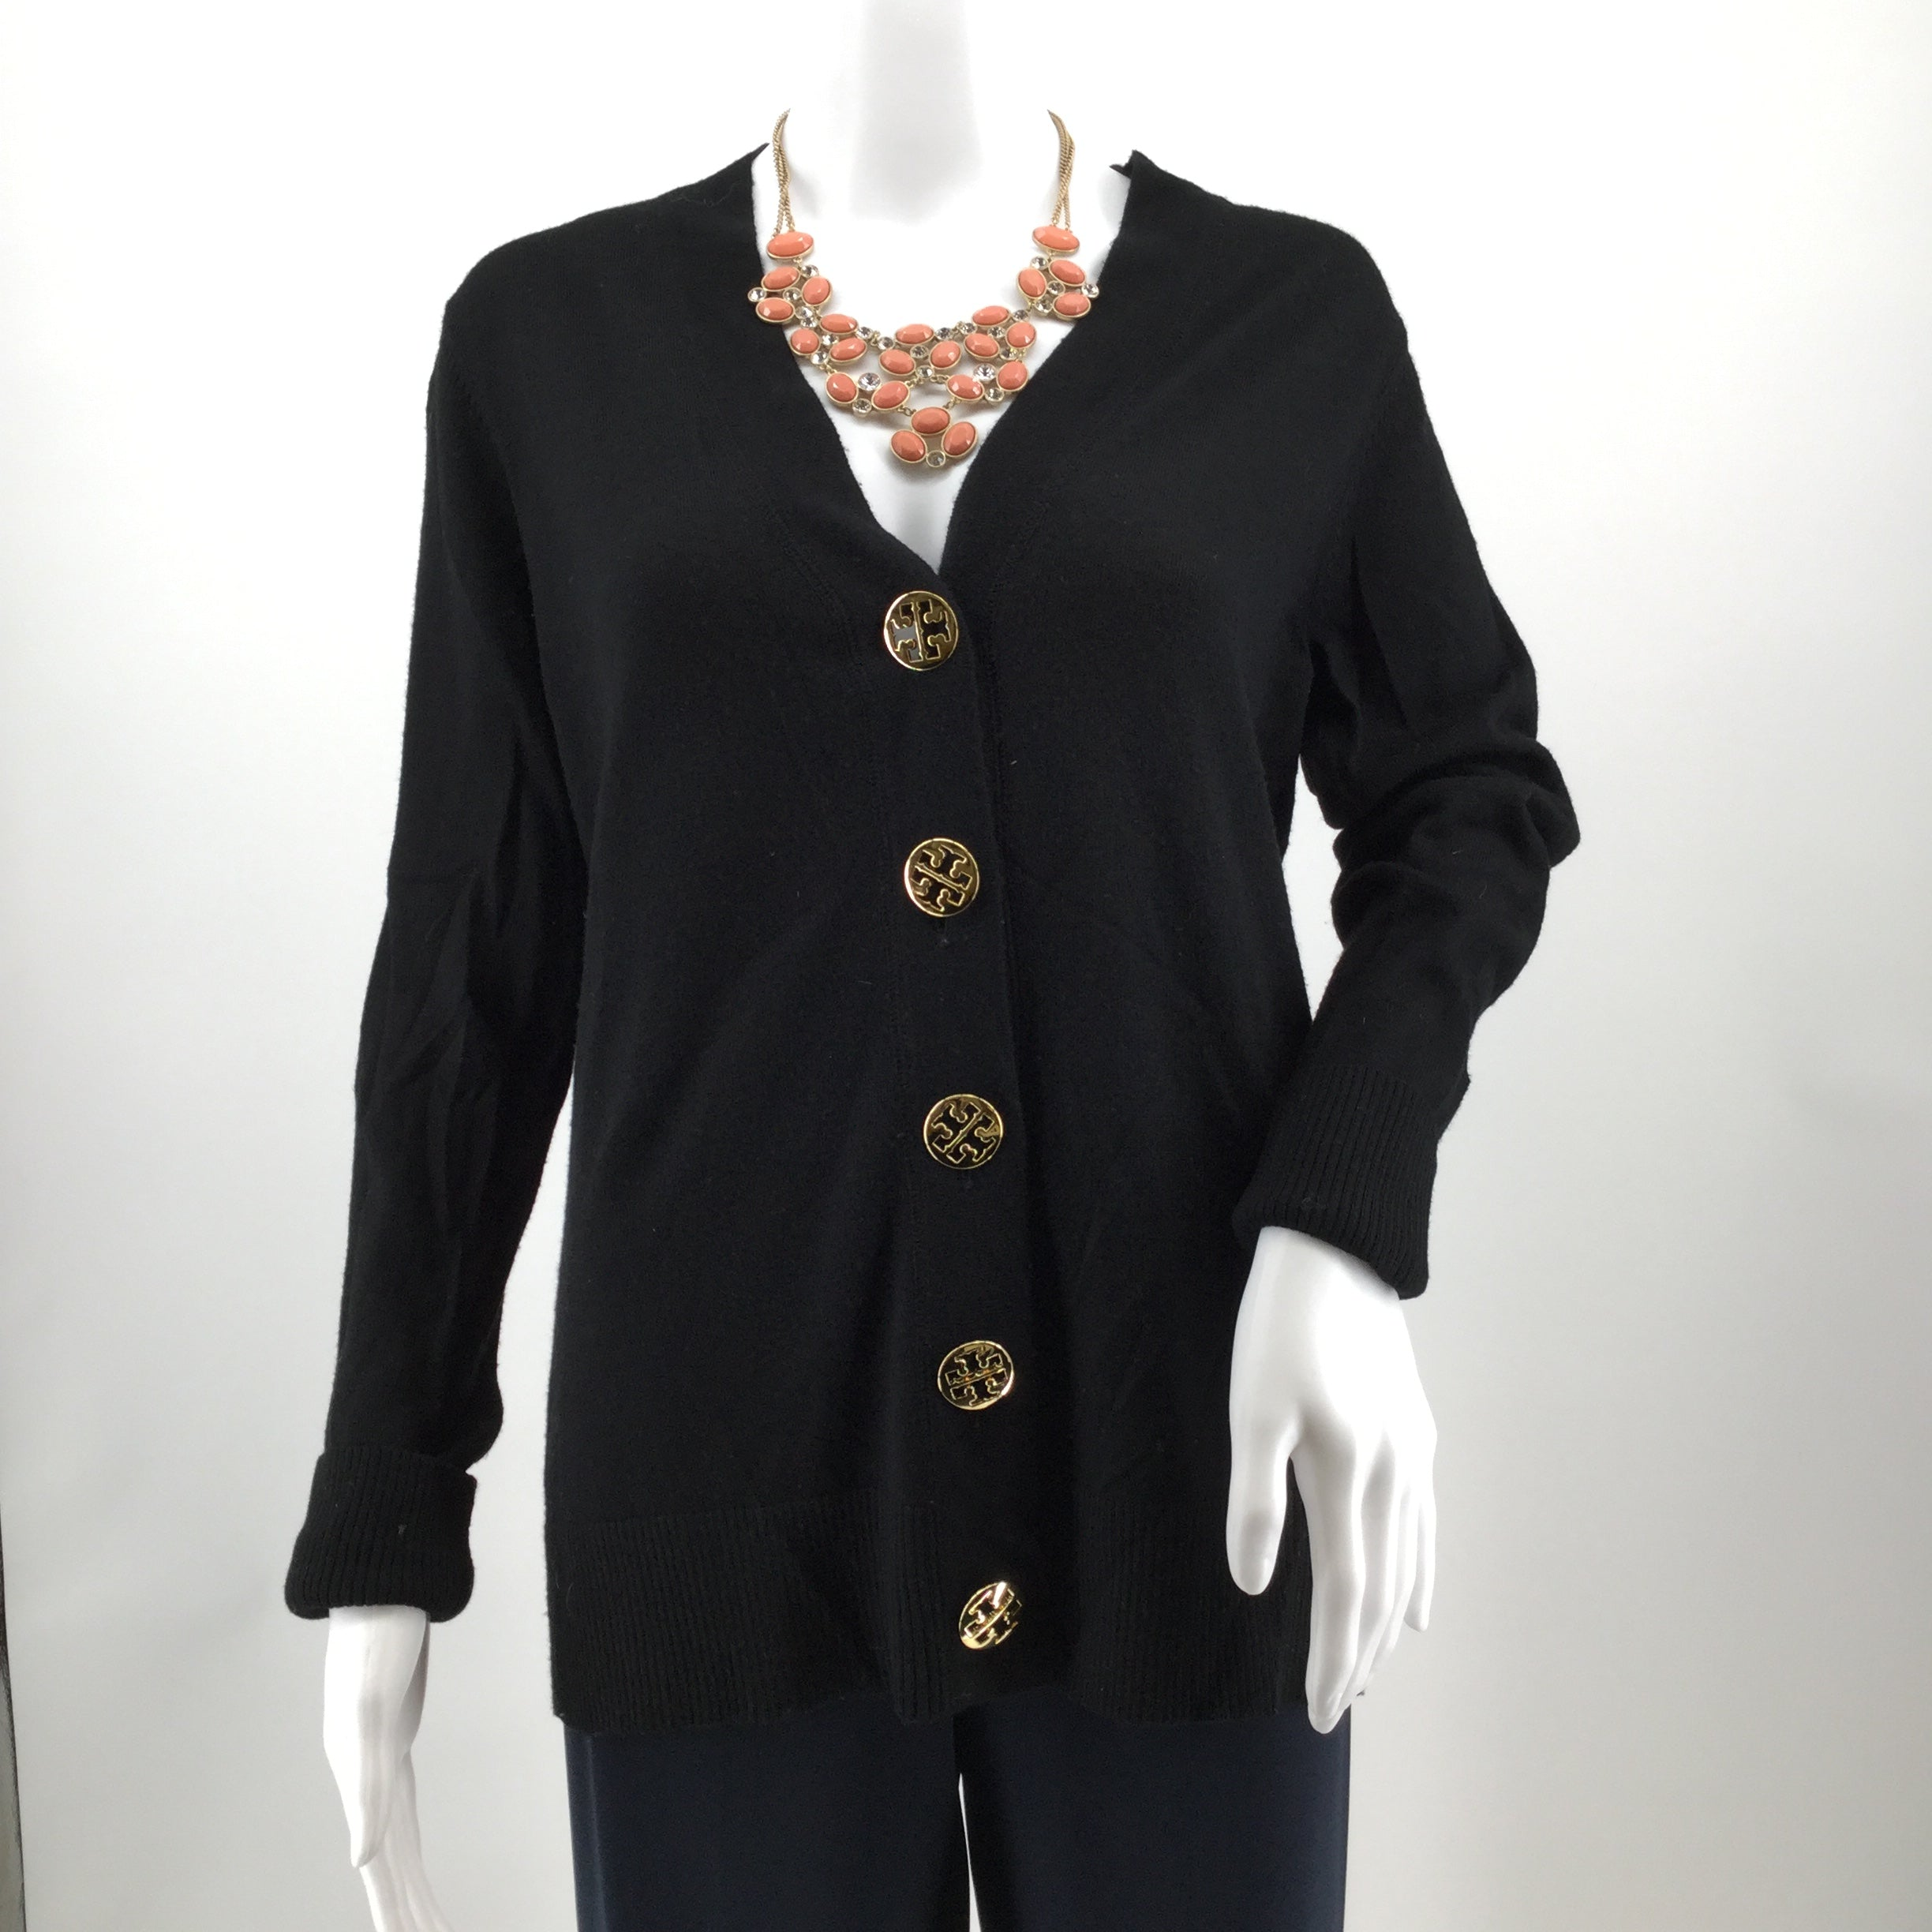 APPAREL,TOPS - 100% WOOL BLACK CARDIGAN SWEATER WITH 5 GOLD TB LOGO BUTTONS.